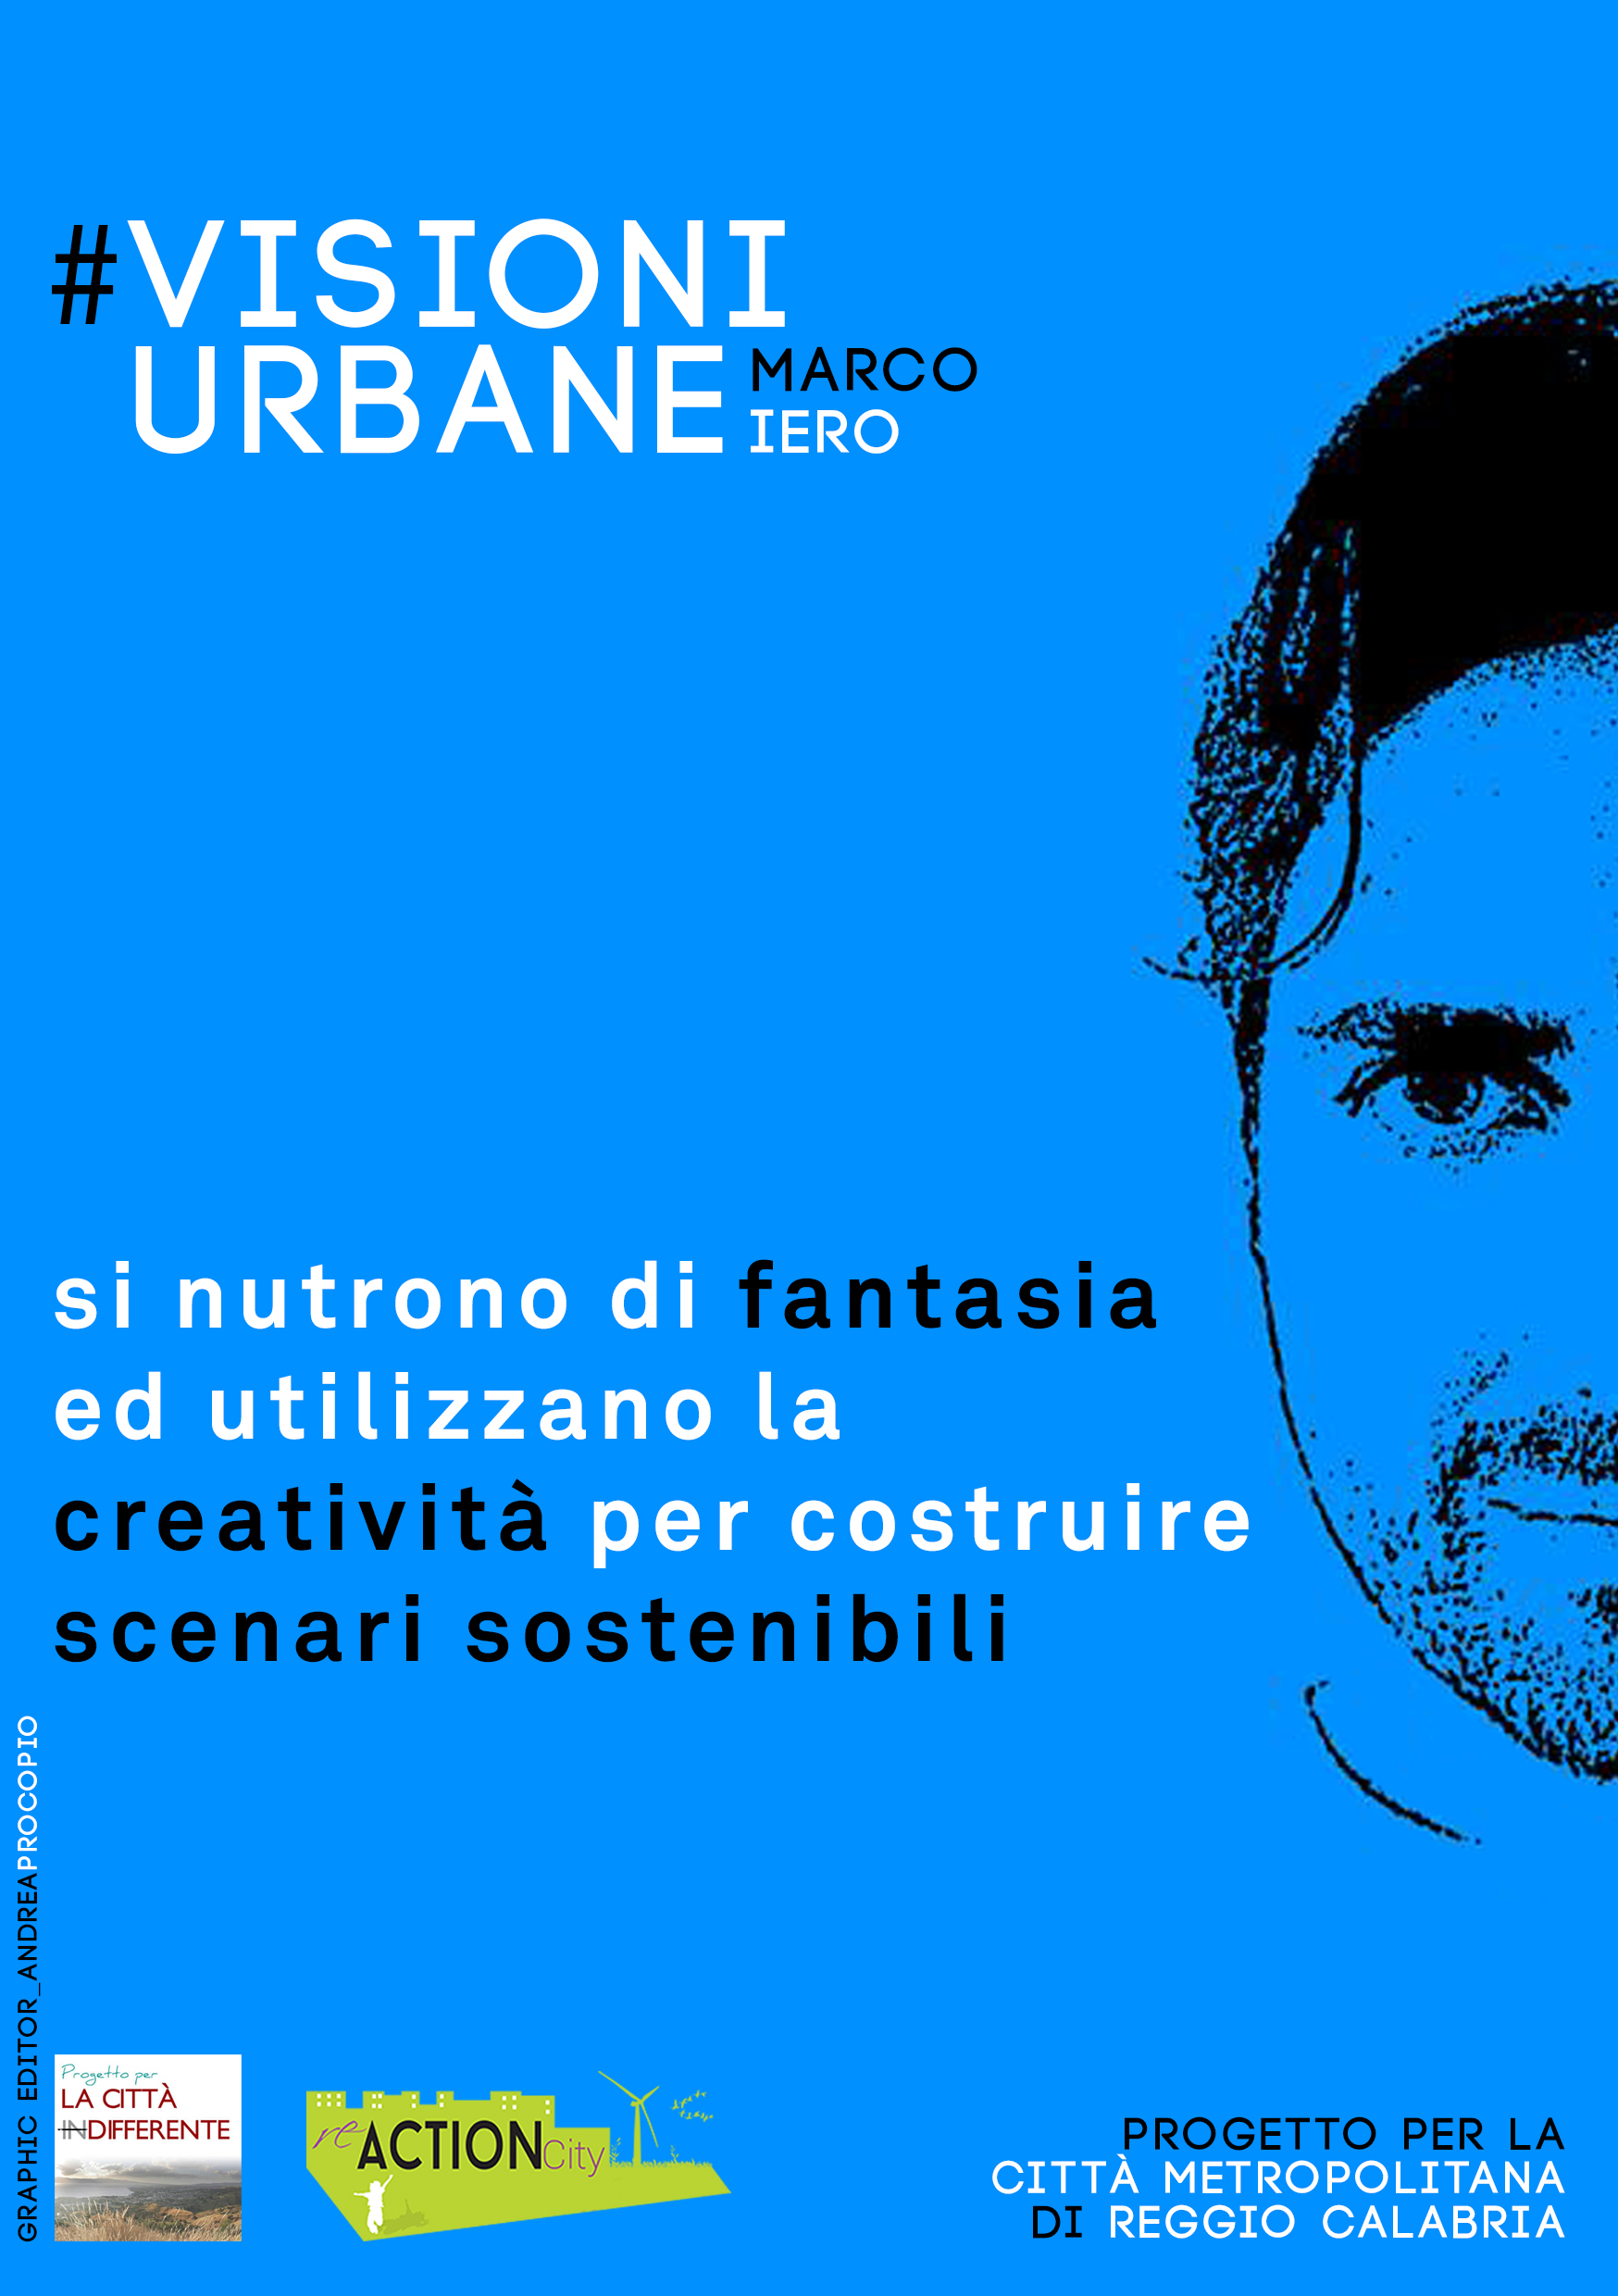 post-it_M.Iero #visioni urbane.jpg